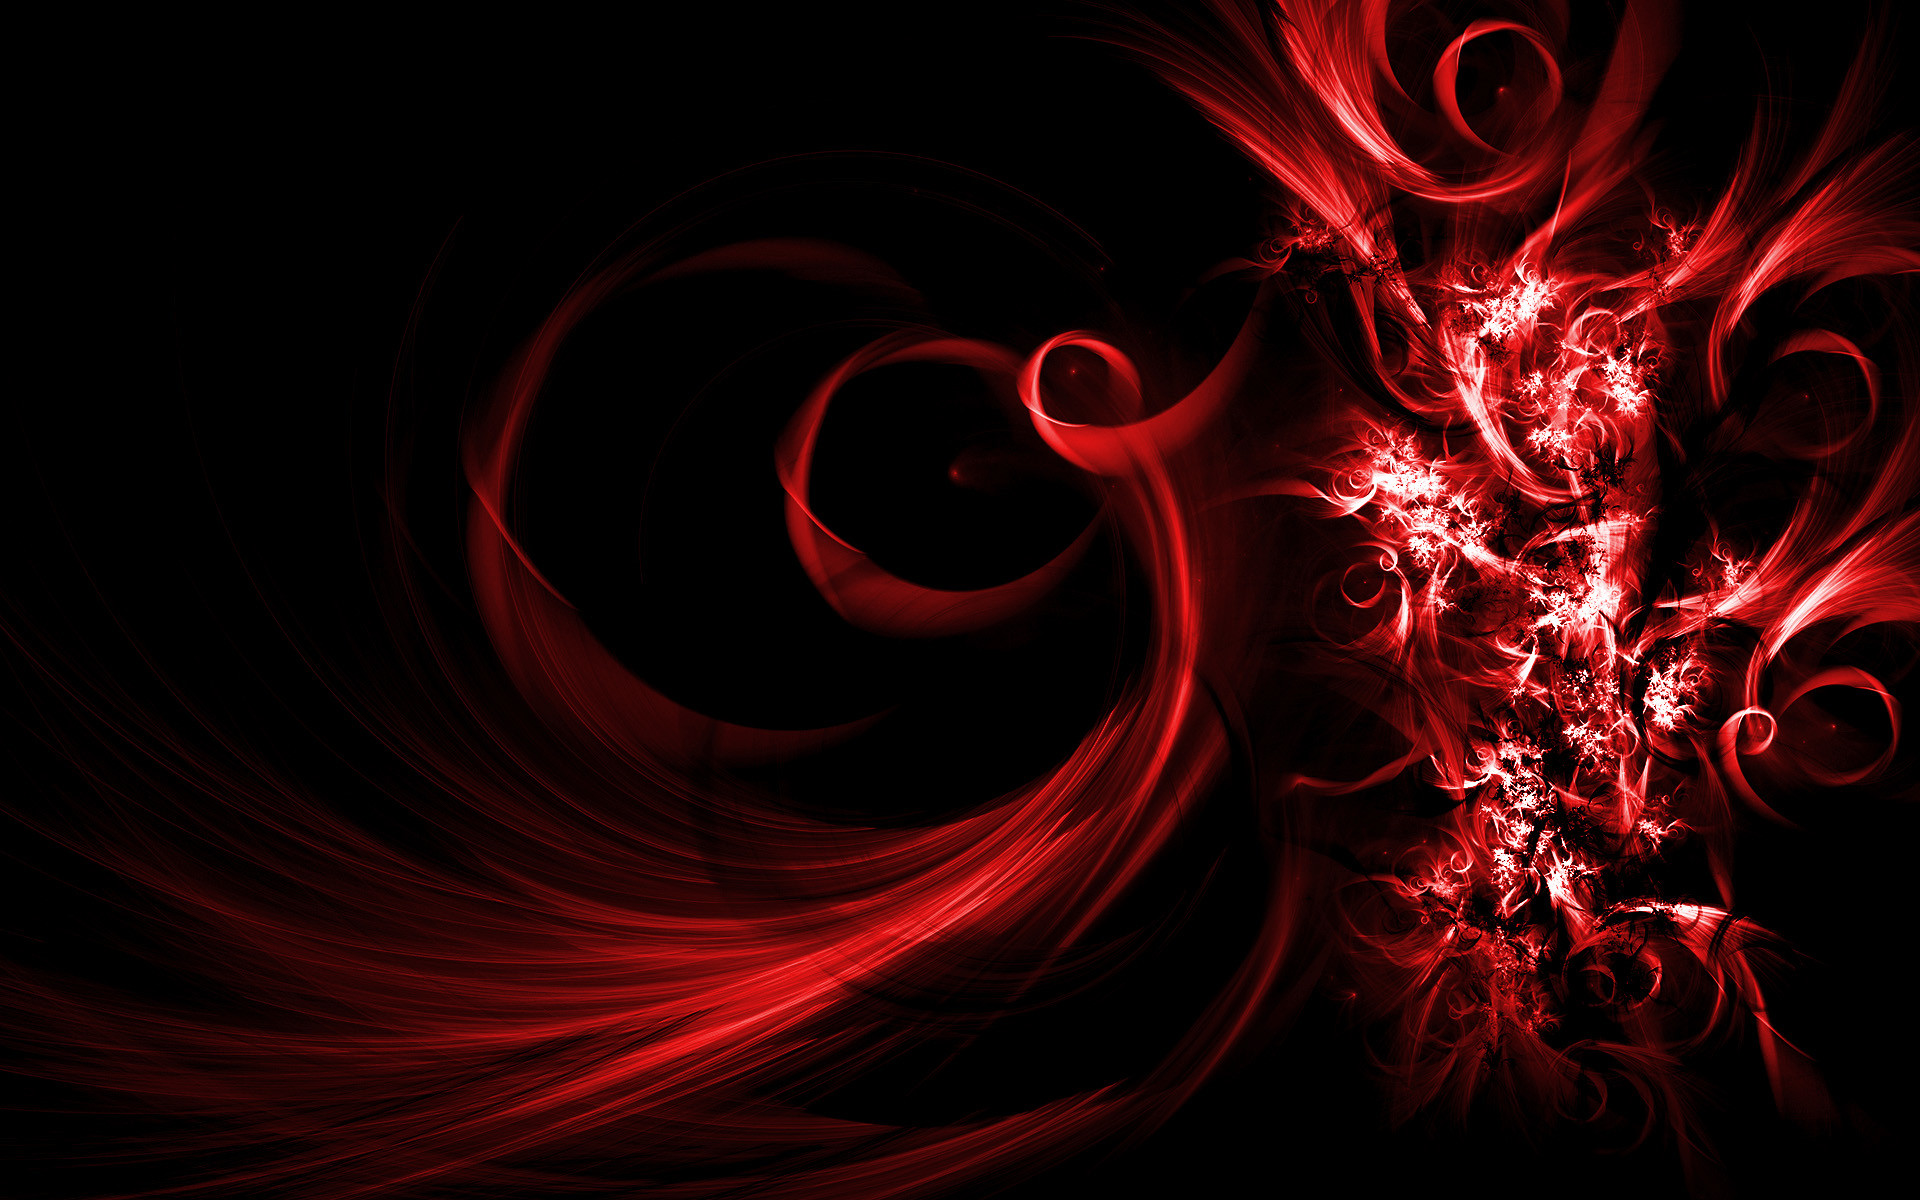 Pin by Irina Voloshina on Black&Red.   Pinterest   Wallpaper backgrounds  and Wallpaper